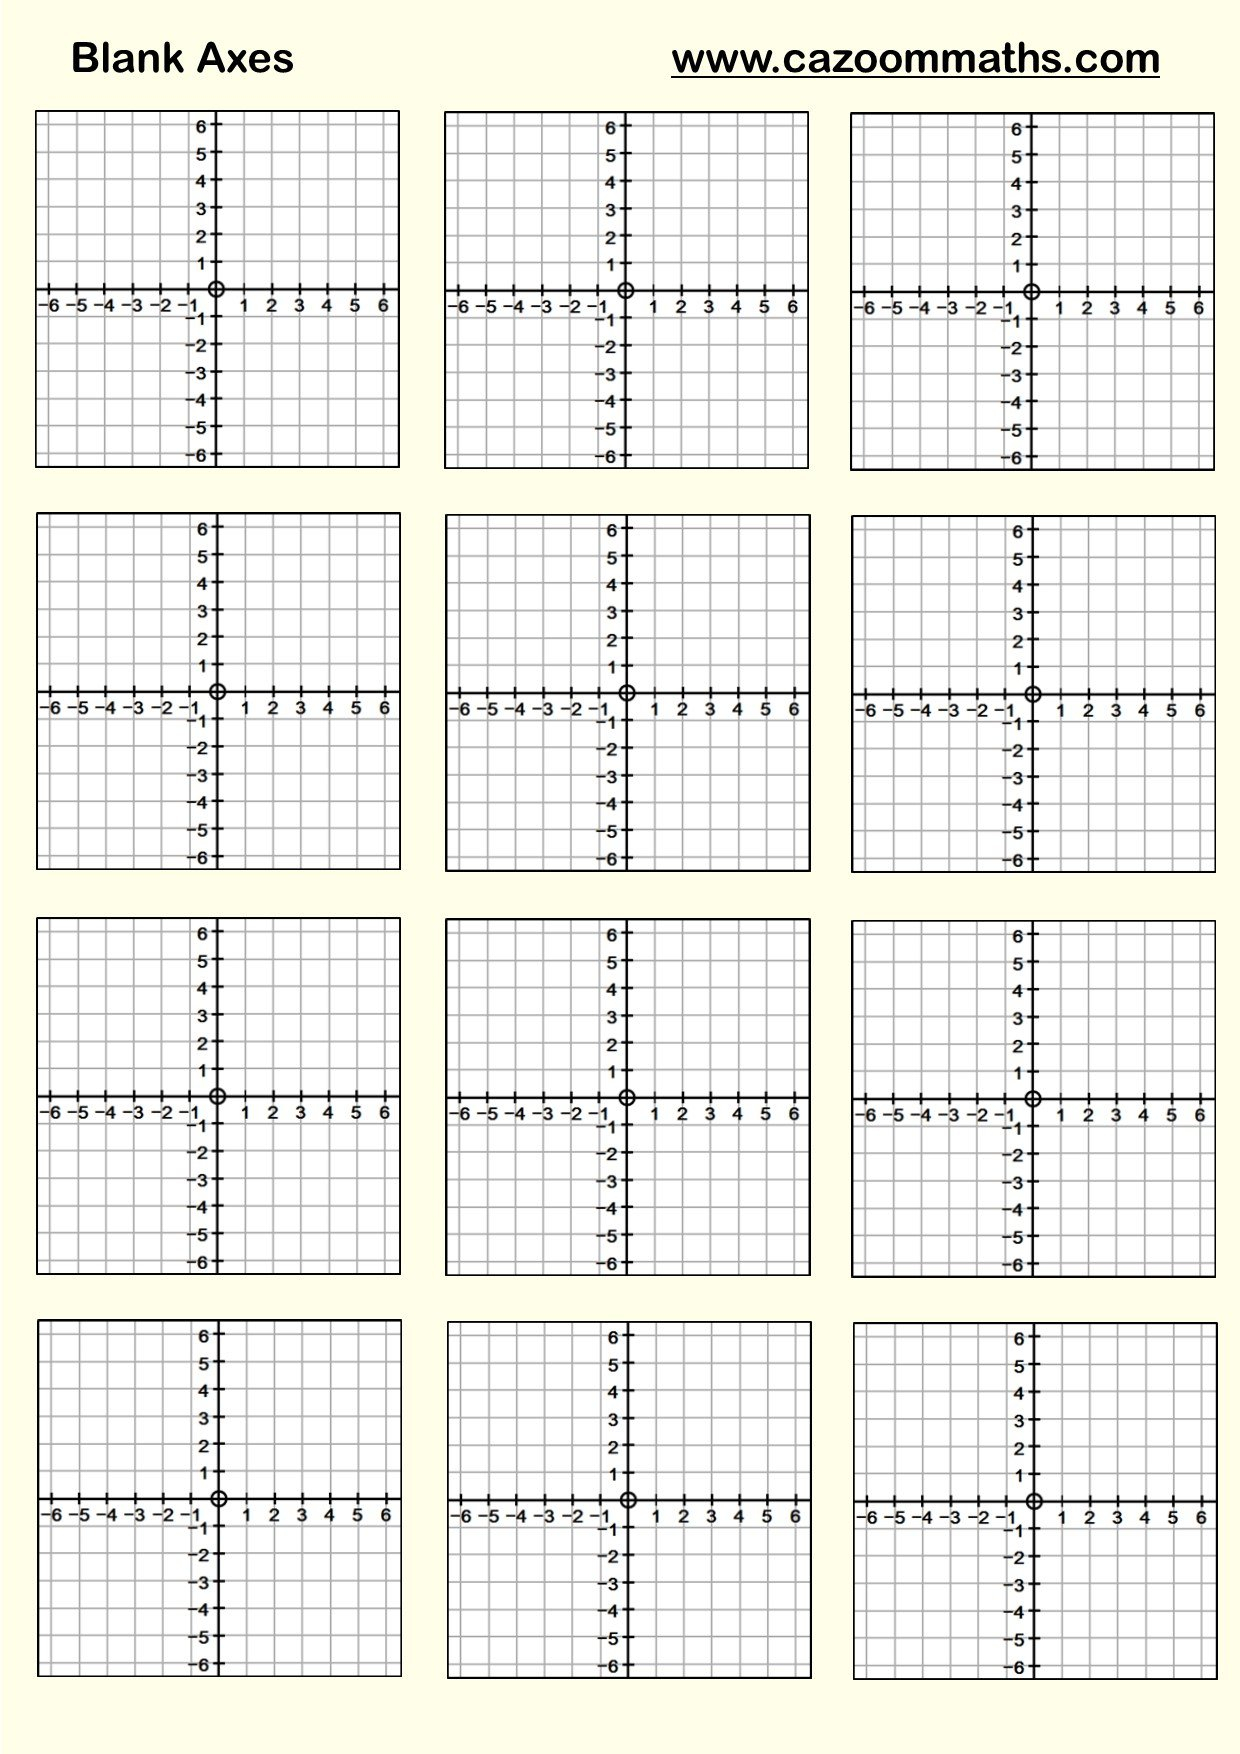 Free Linear Equations Worksheet  Cazoom Maths Also Graphing Linear Functions Worksheet